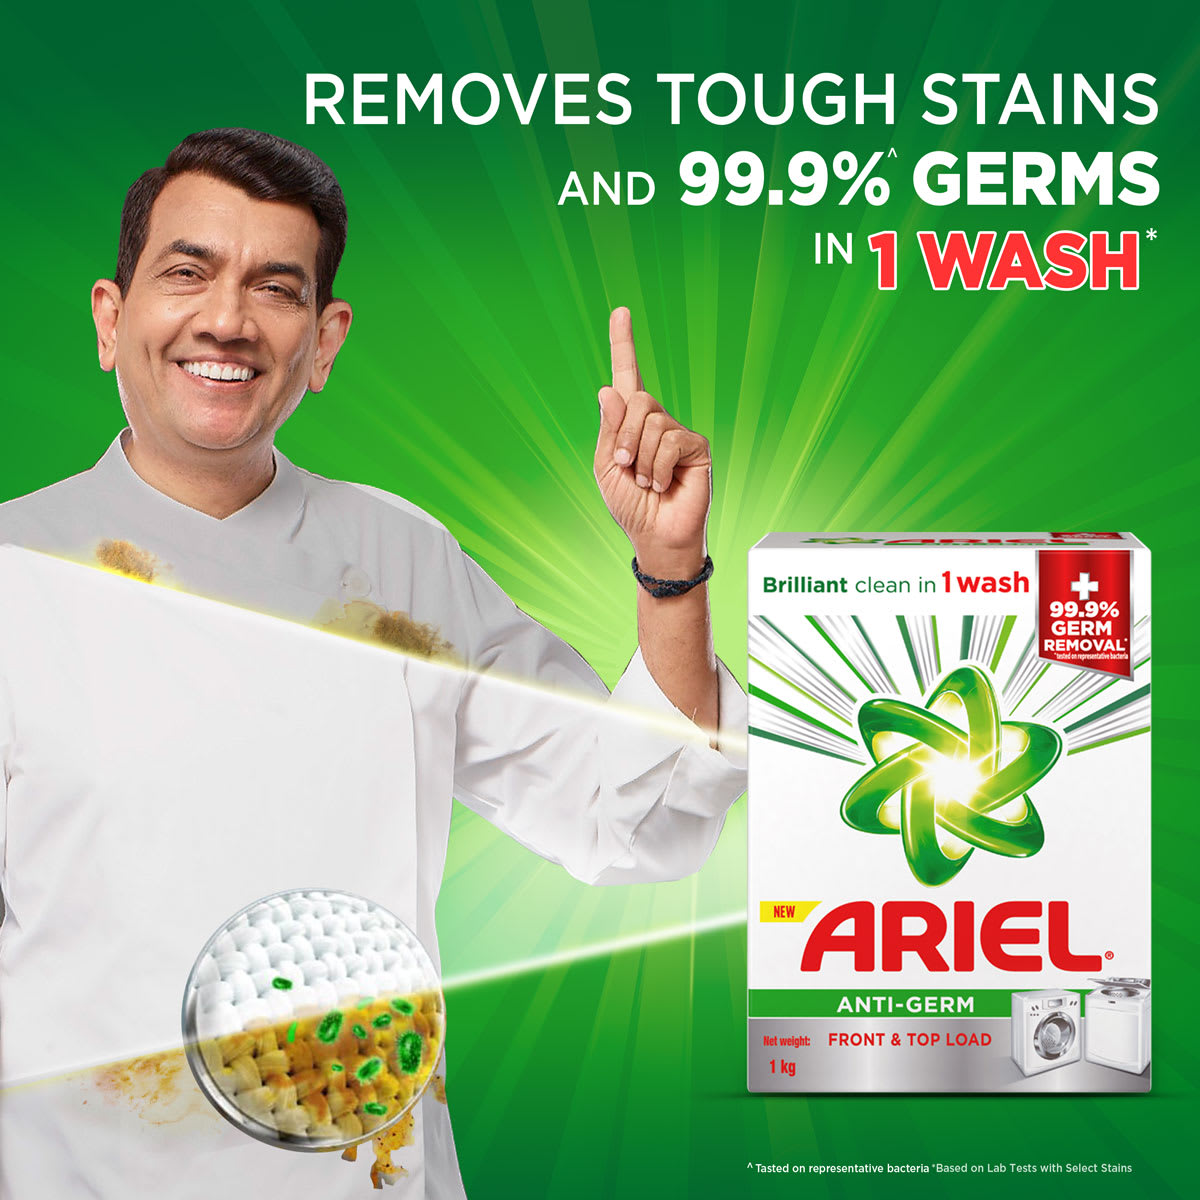 New Ariel Anti-Germ removes tough stains and 99.9% of germs in 1 wash